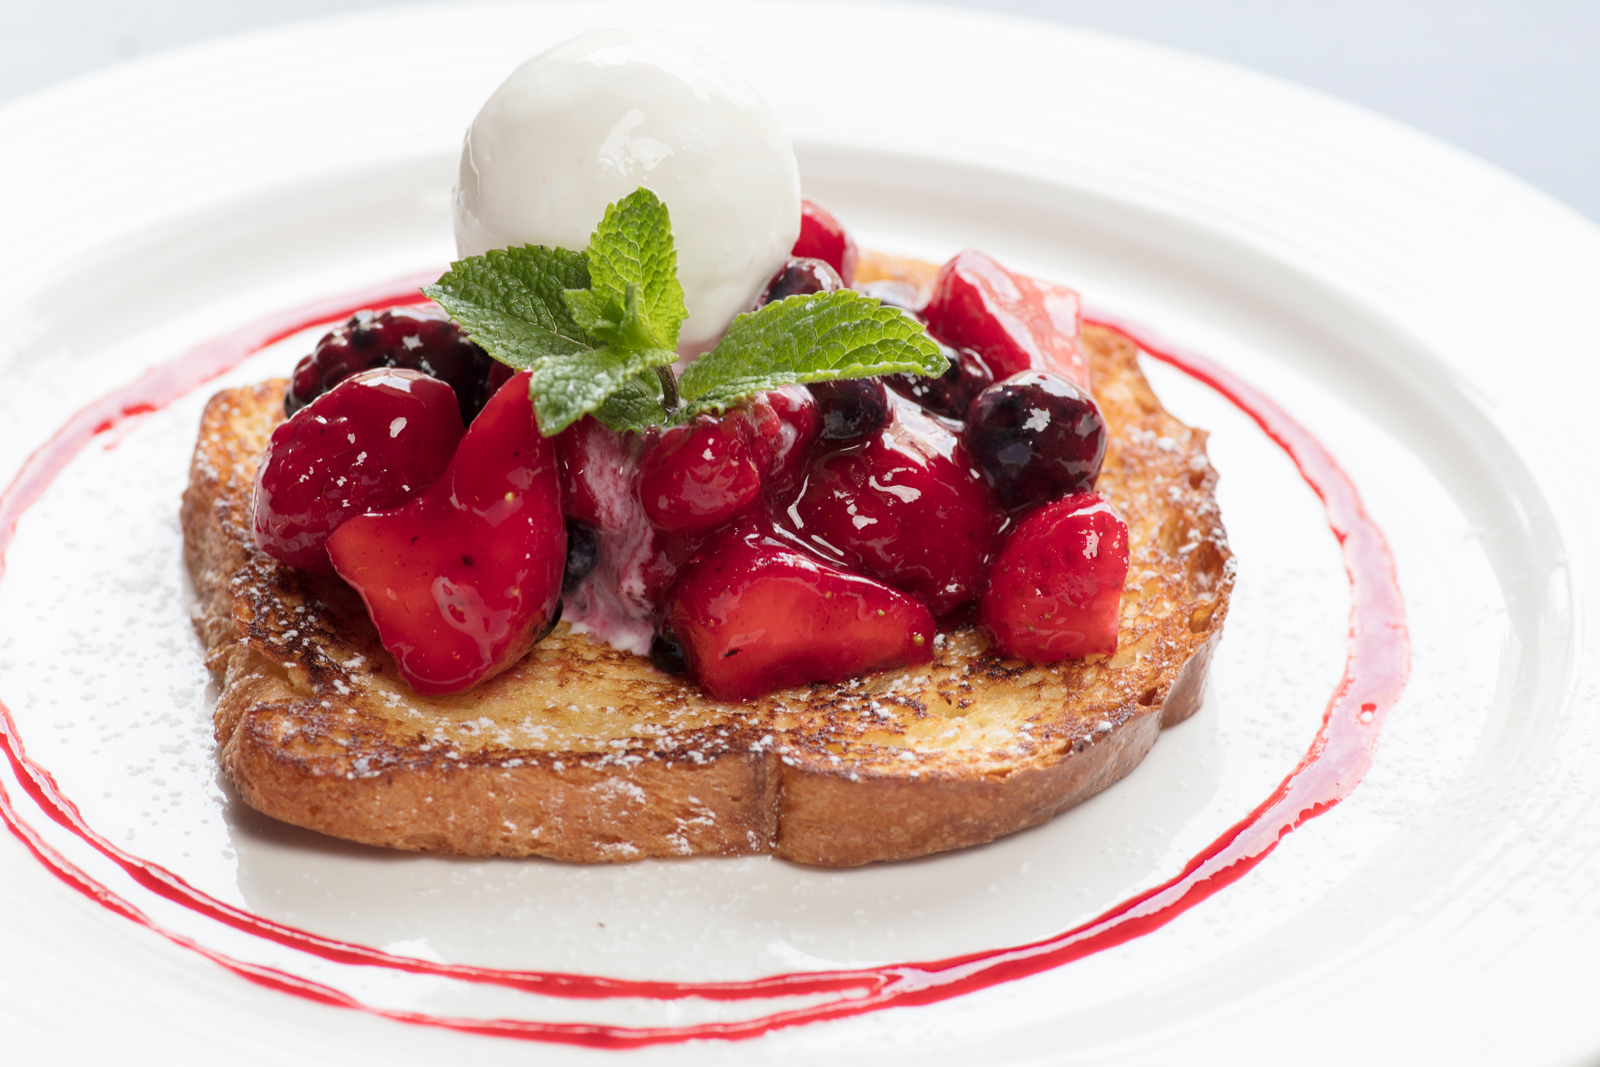 Pain Perdu, Macerated Strawberries & Home Made Vanilla Ice Cream